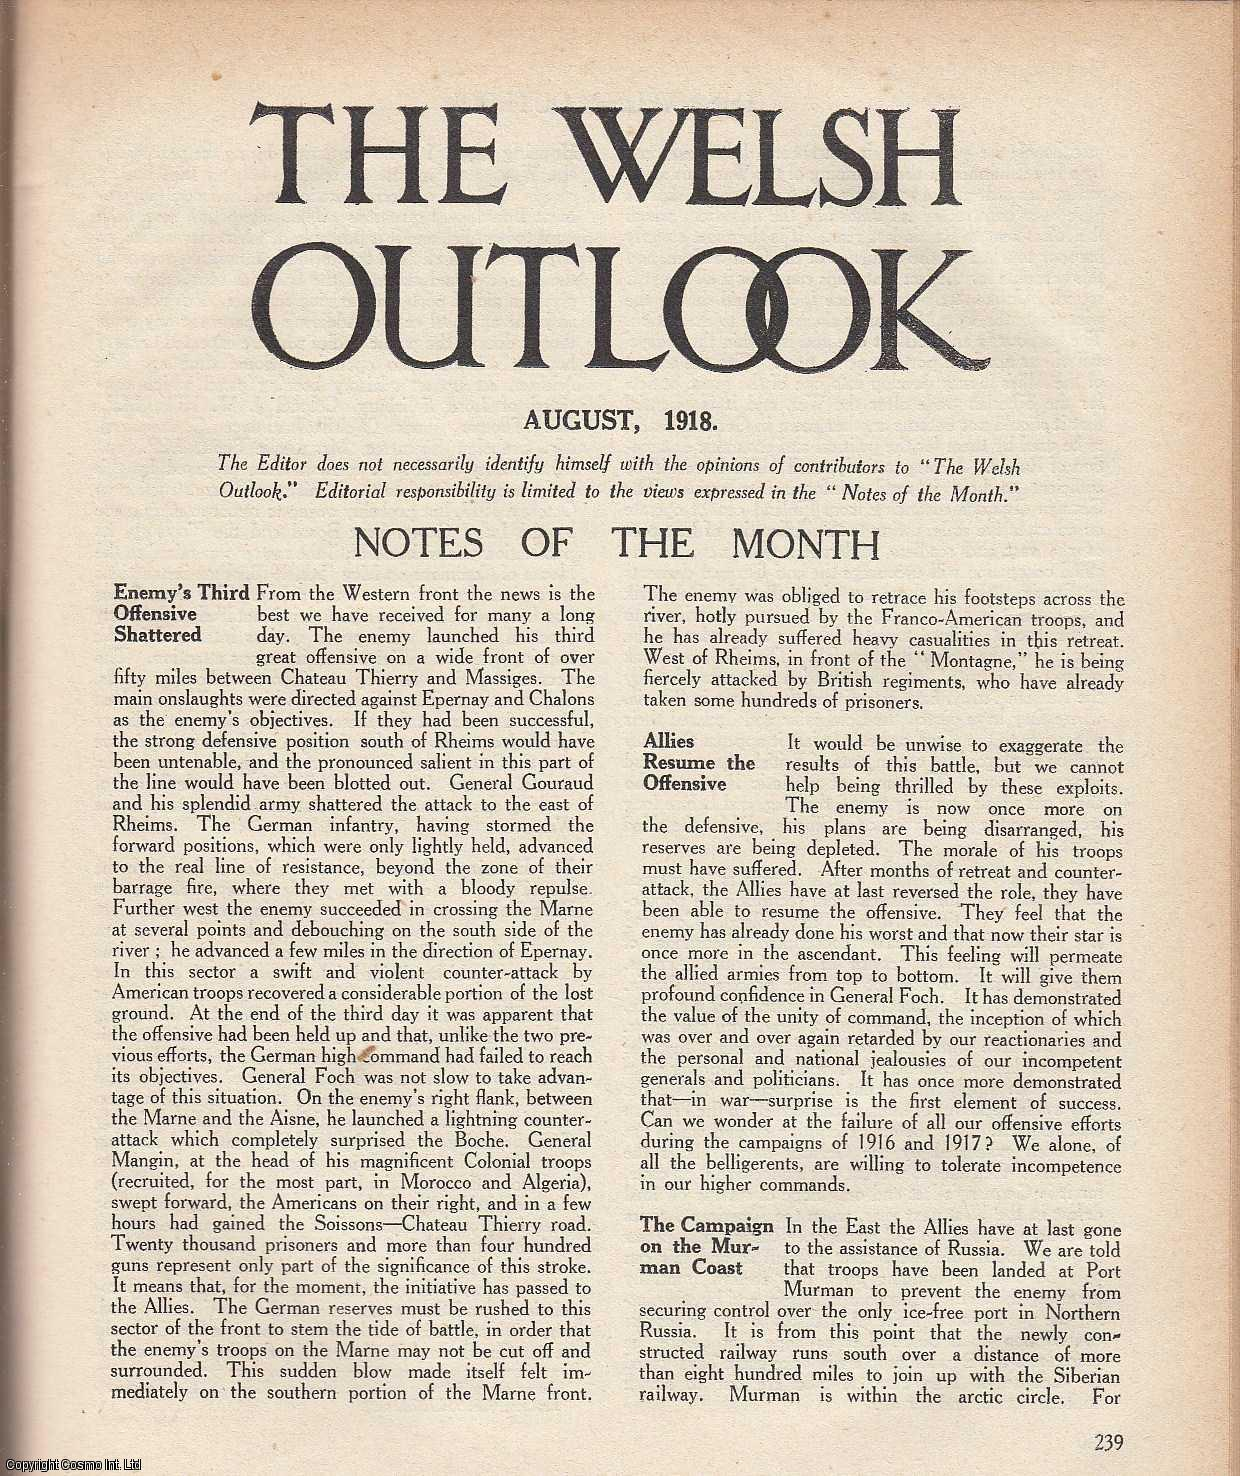 The Welsh Outlook. A Monthly Journal of National Social Progress. August, 1918. Contains; Why not Form The League Now? by David Davies; Dangers of The Political Situation by a Welsh Nationalist; Wales: Its Politics and Economics: The Finance of Federalism by Edward T. John; A Bible-Lover's Lament by Frederick J. Mathias; The National Eisteddfod Cymanfa Ganu by L.J. Roberts; The Governments Housing Policy by D. Lleufer Thomas; Luc Sais by H.M.V., Thomas Jones (Editor)